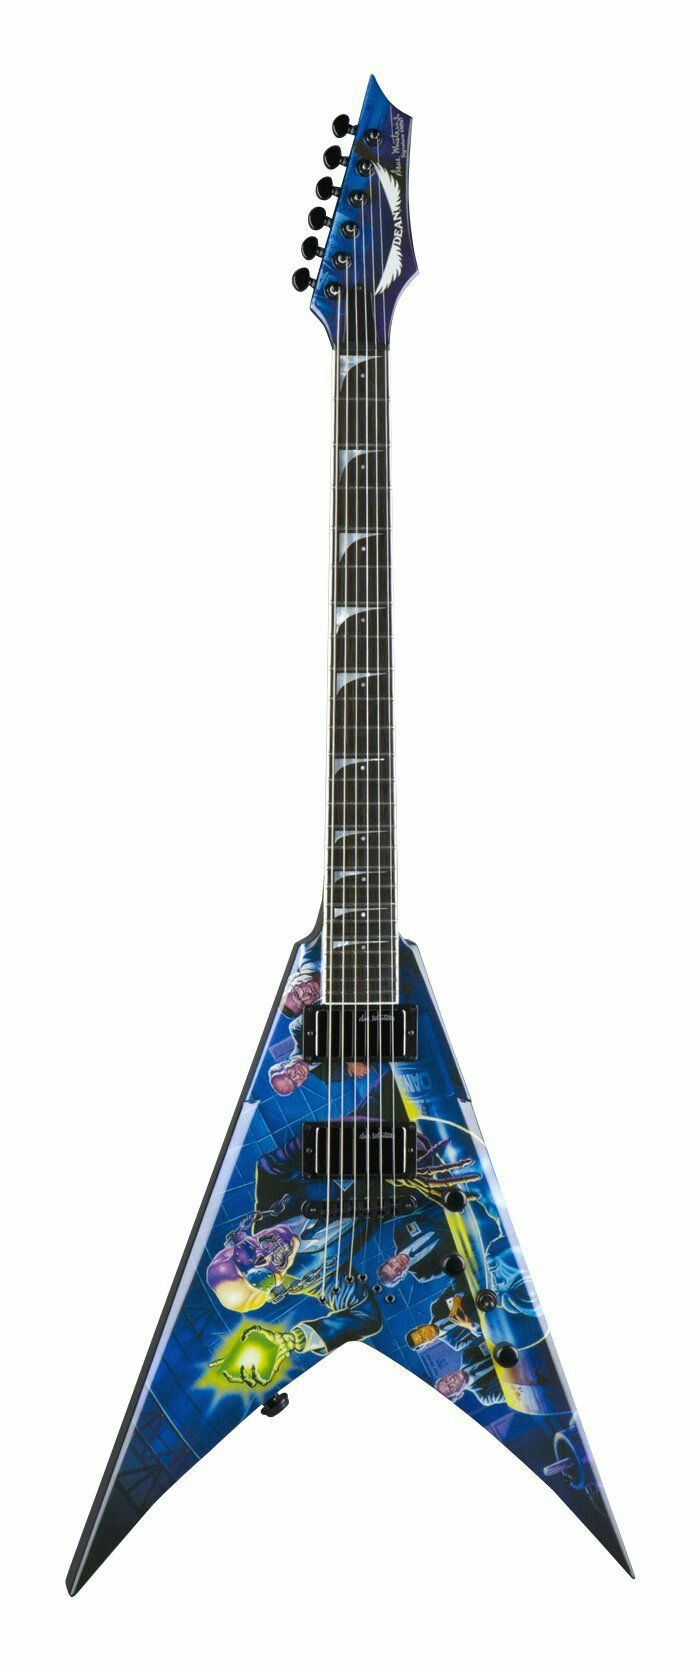 Rust Peace Edition Flying V Dave Mustaine Megadeth Dave Mustaine Dave Mustaine Guitar Guitar